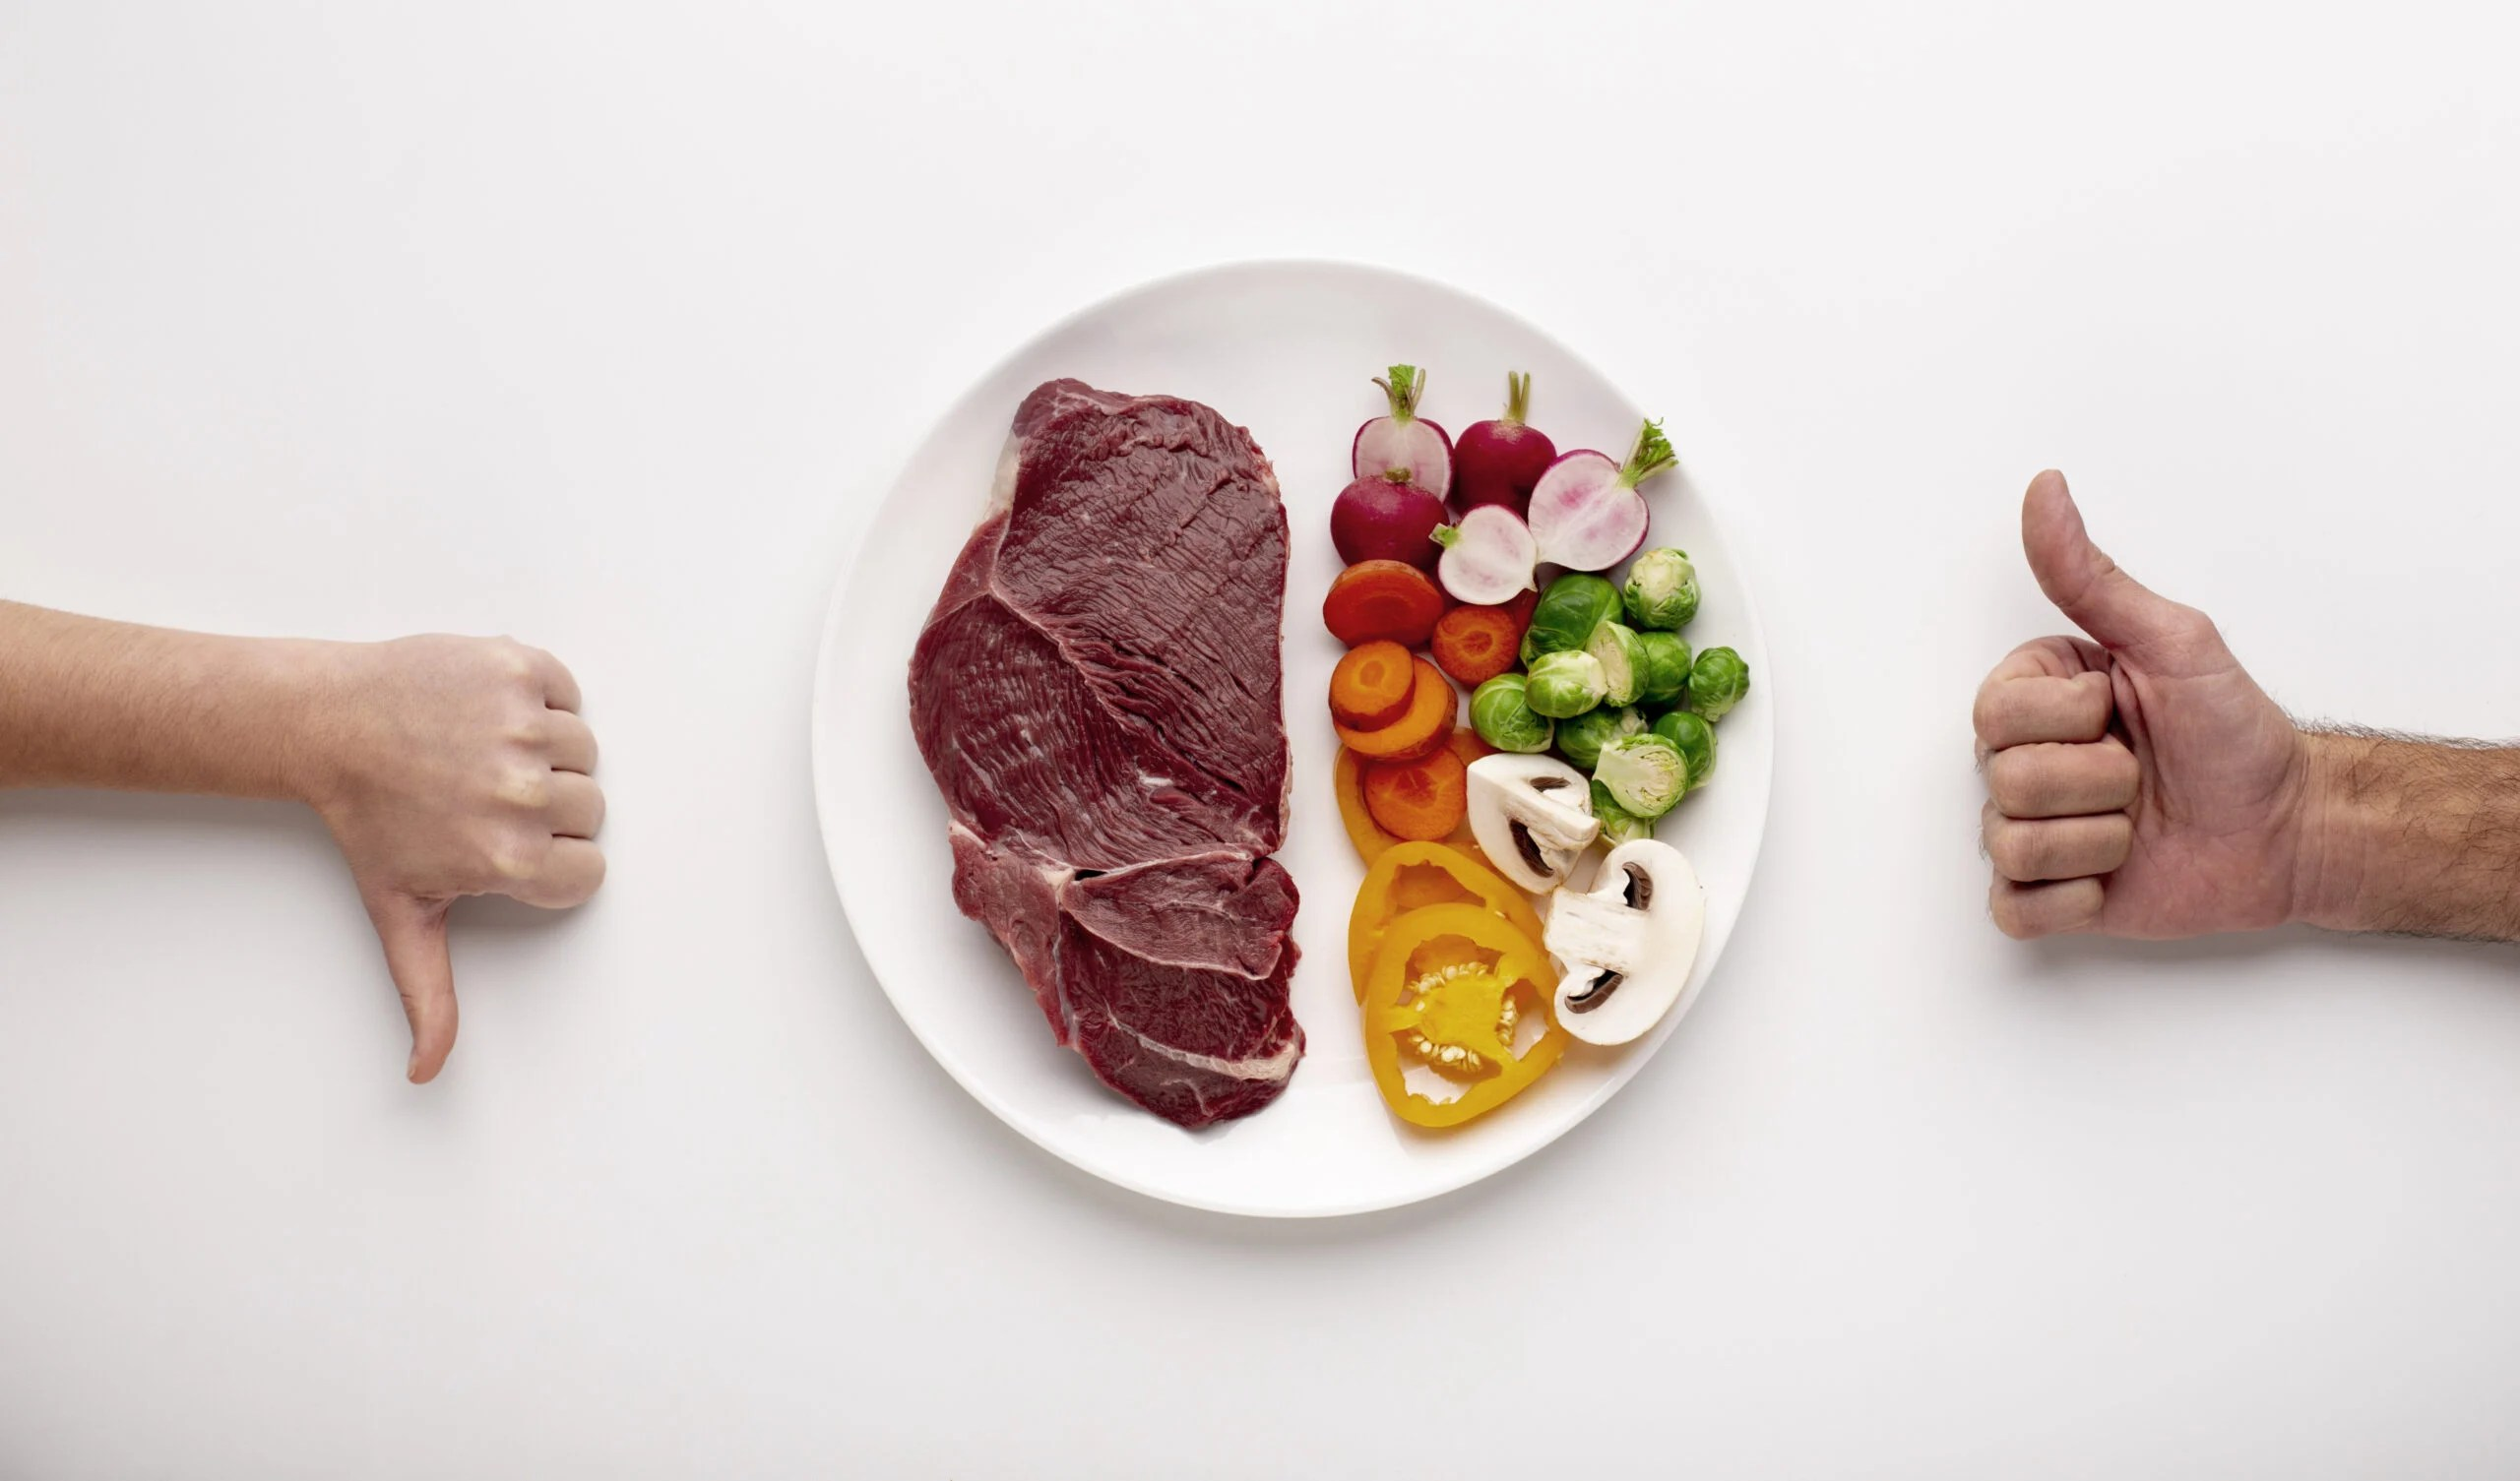 paleo diet tired of cooking meat everyday